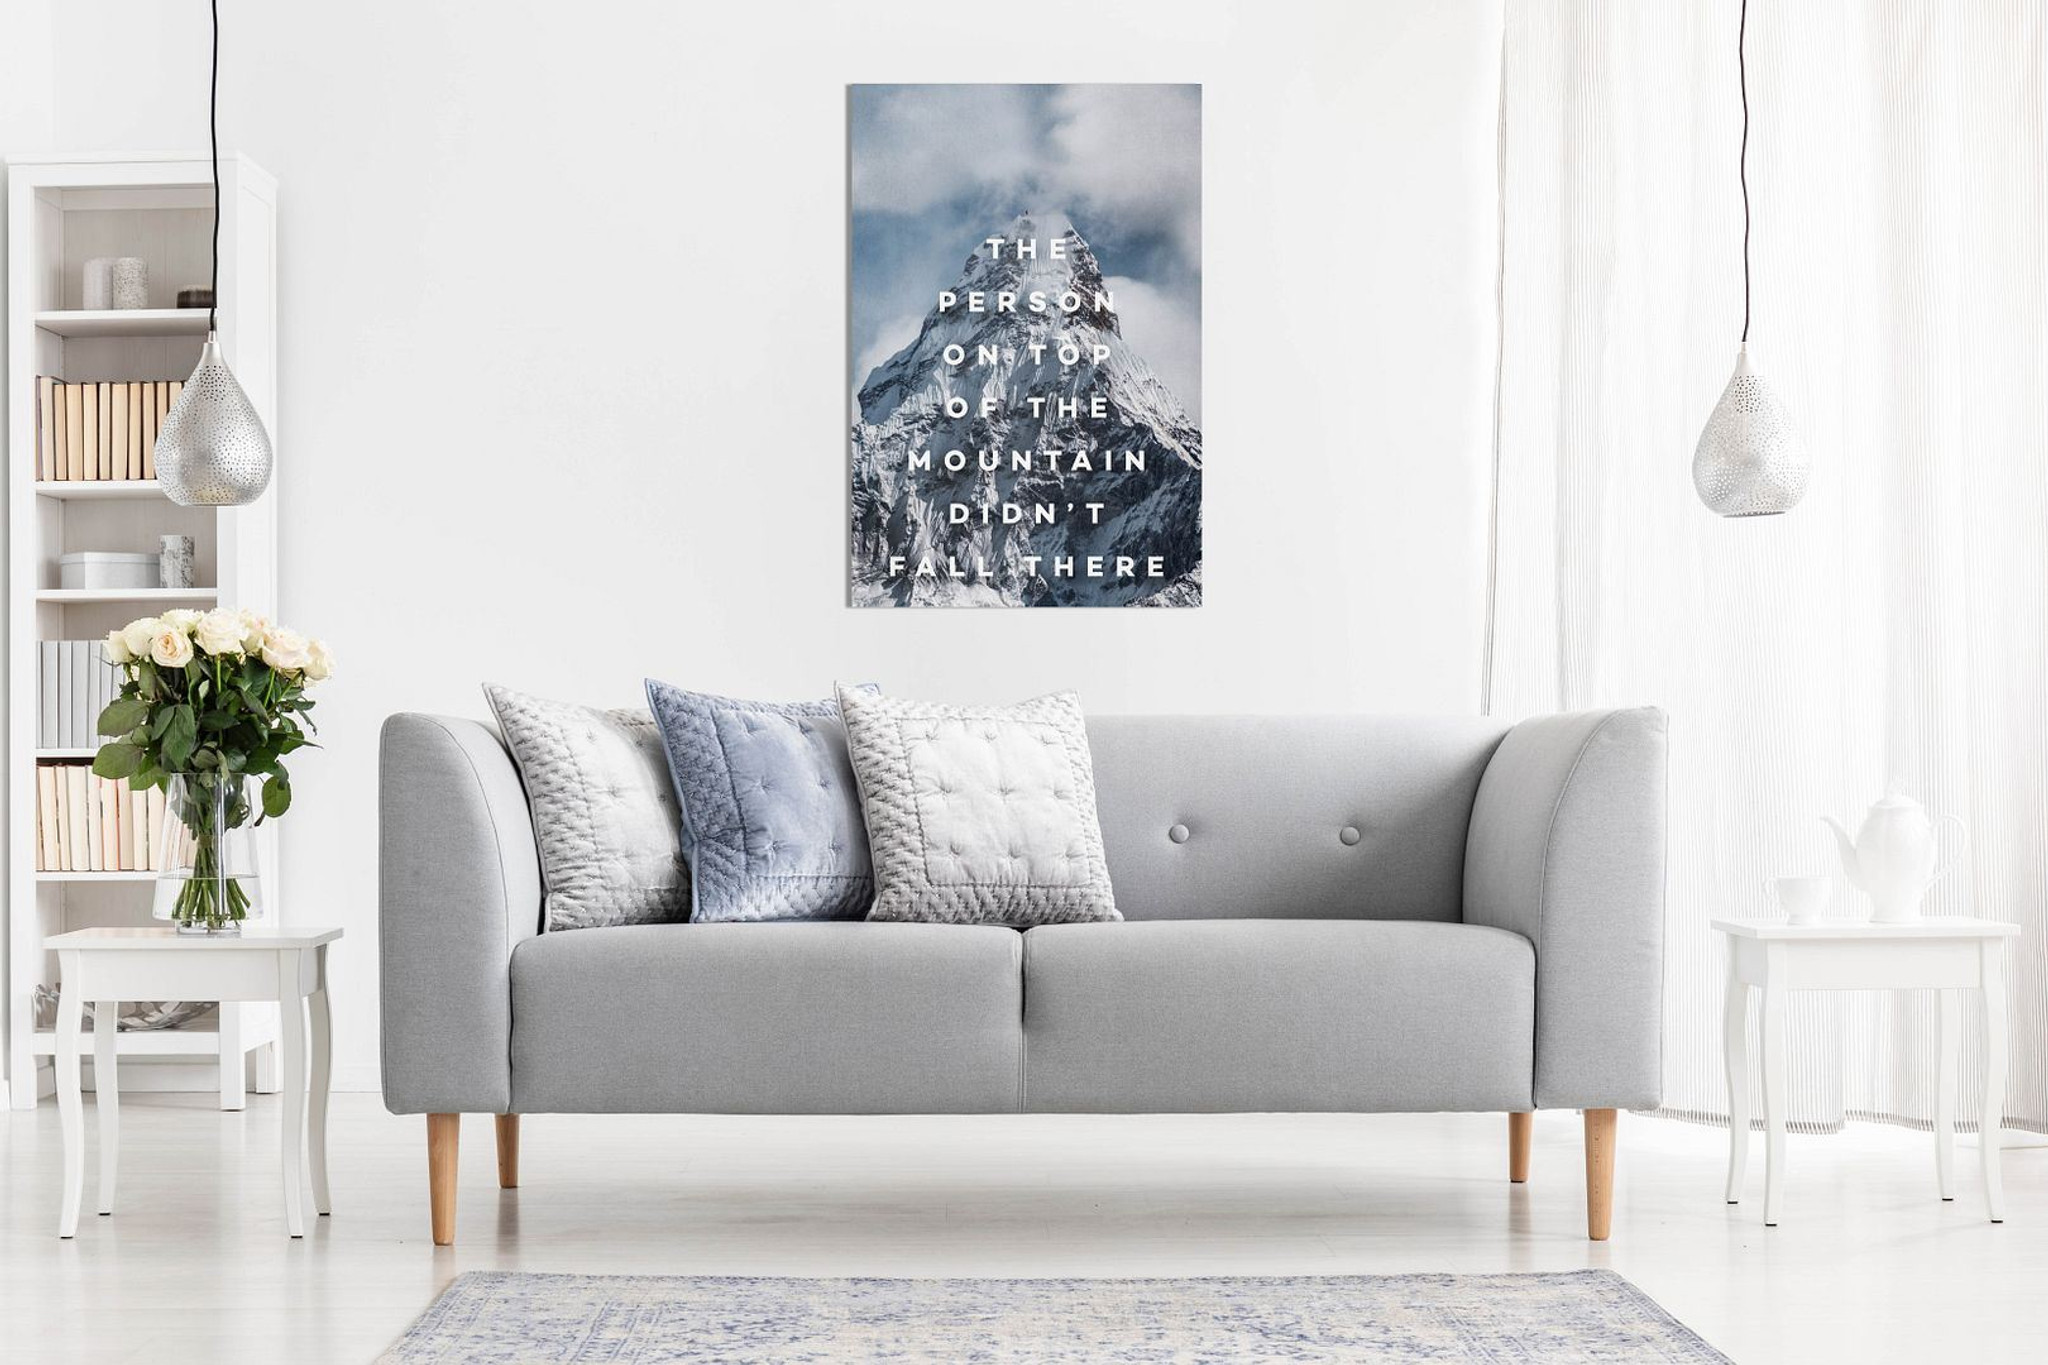 Inspirational Motivational Quotes Framed Canvas Wall Art Picture Prints Inspiring for Home Office Study Decor